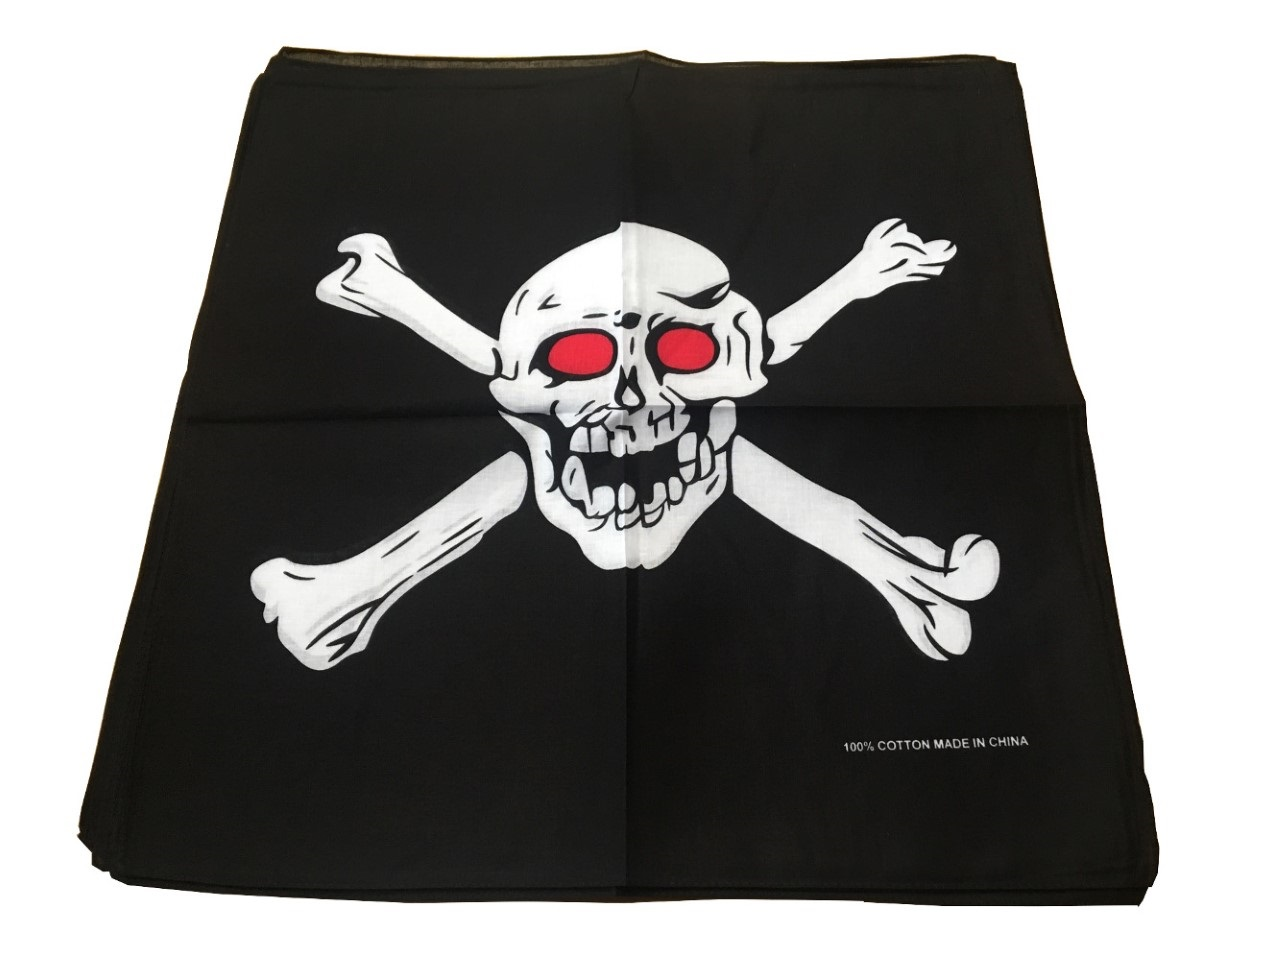 "Skull Bandanas Crossbones Red Eyes (3 PK) 22"" x 22"" 100% Cotton"